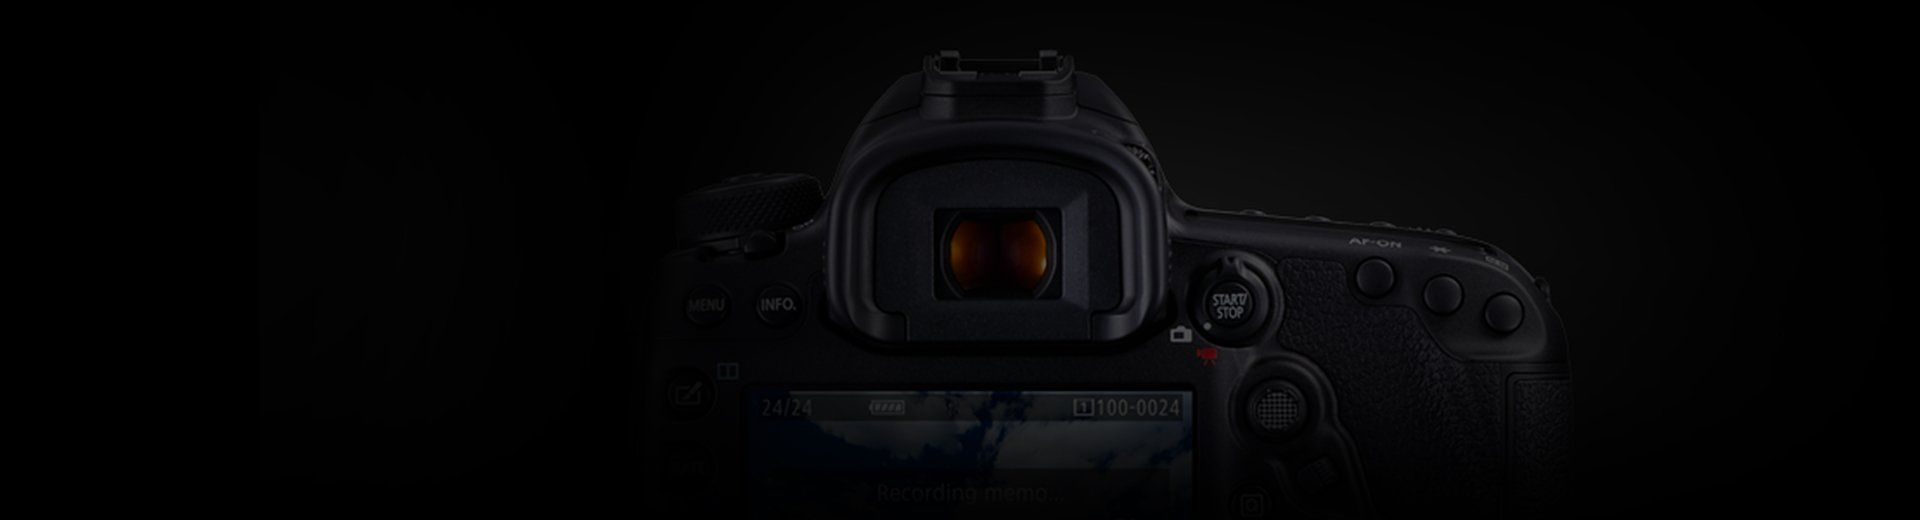 EOS 5D Mark IV Voice Tag Upgrade